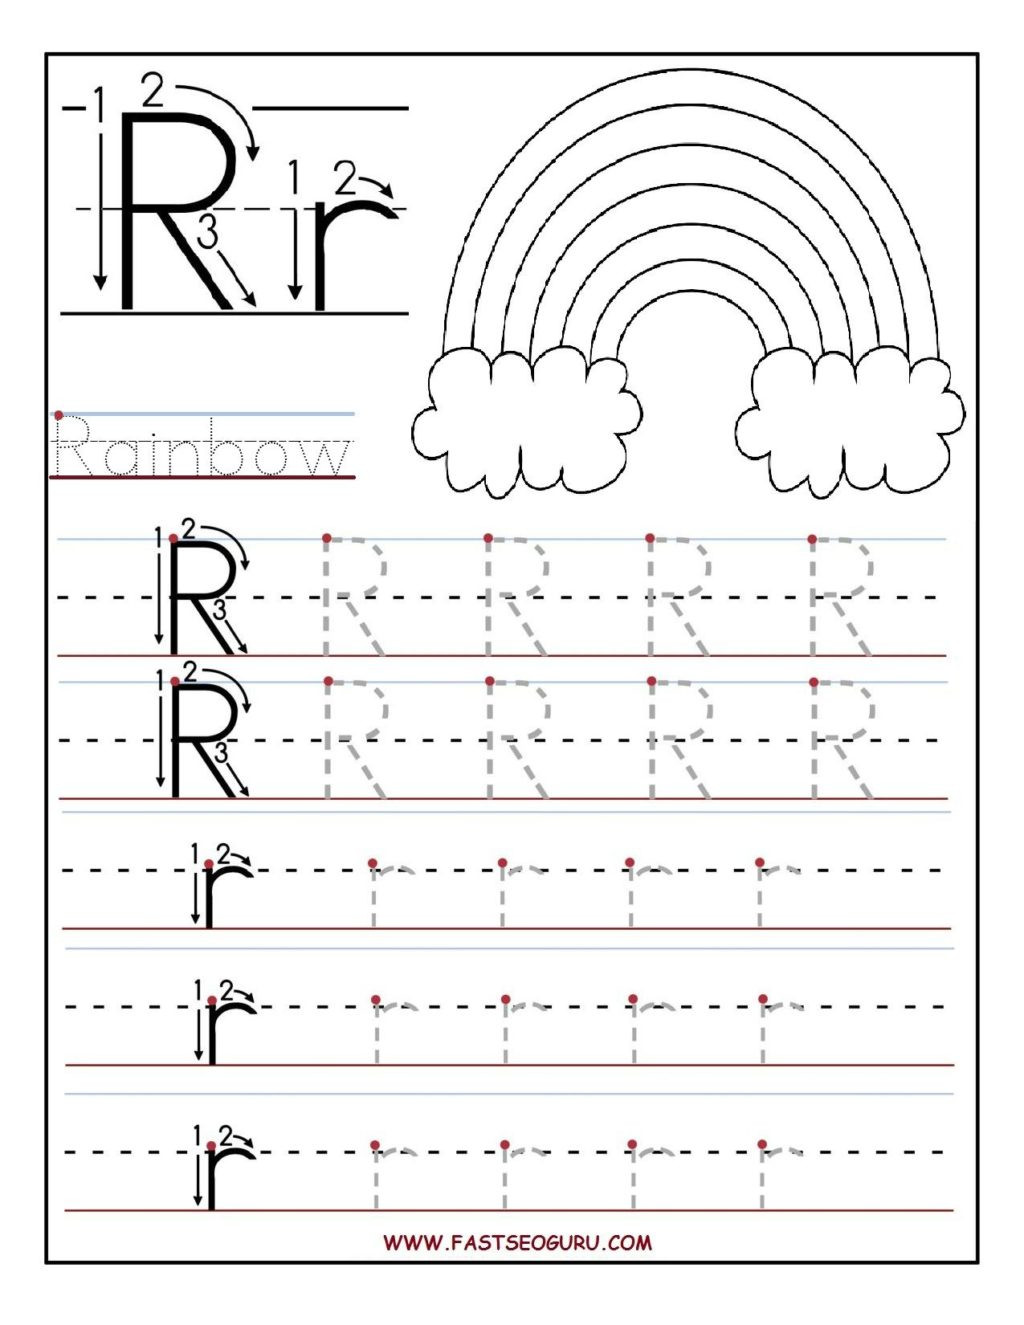 Letter K Tracing Worksheets Preschool Worksheet Letter Trace Worksheet Free Printable Worksheets